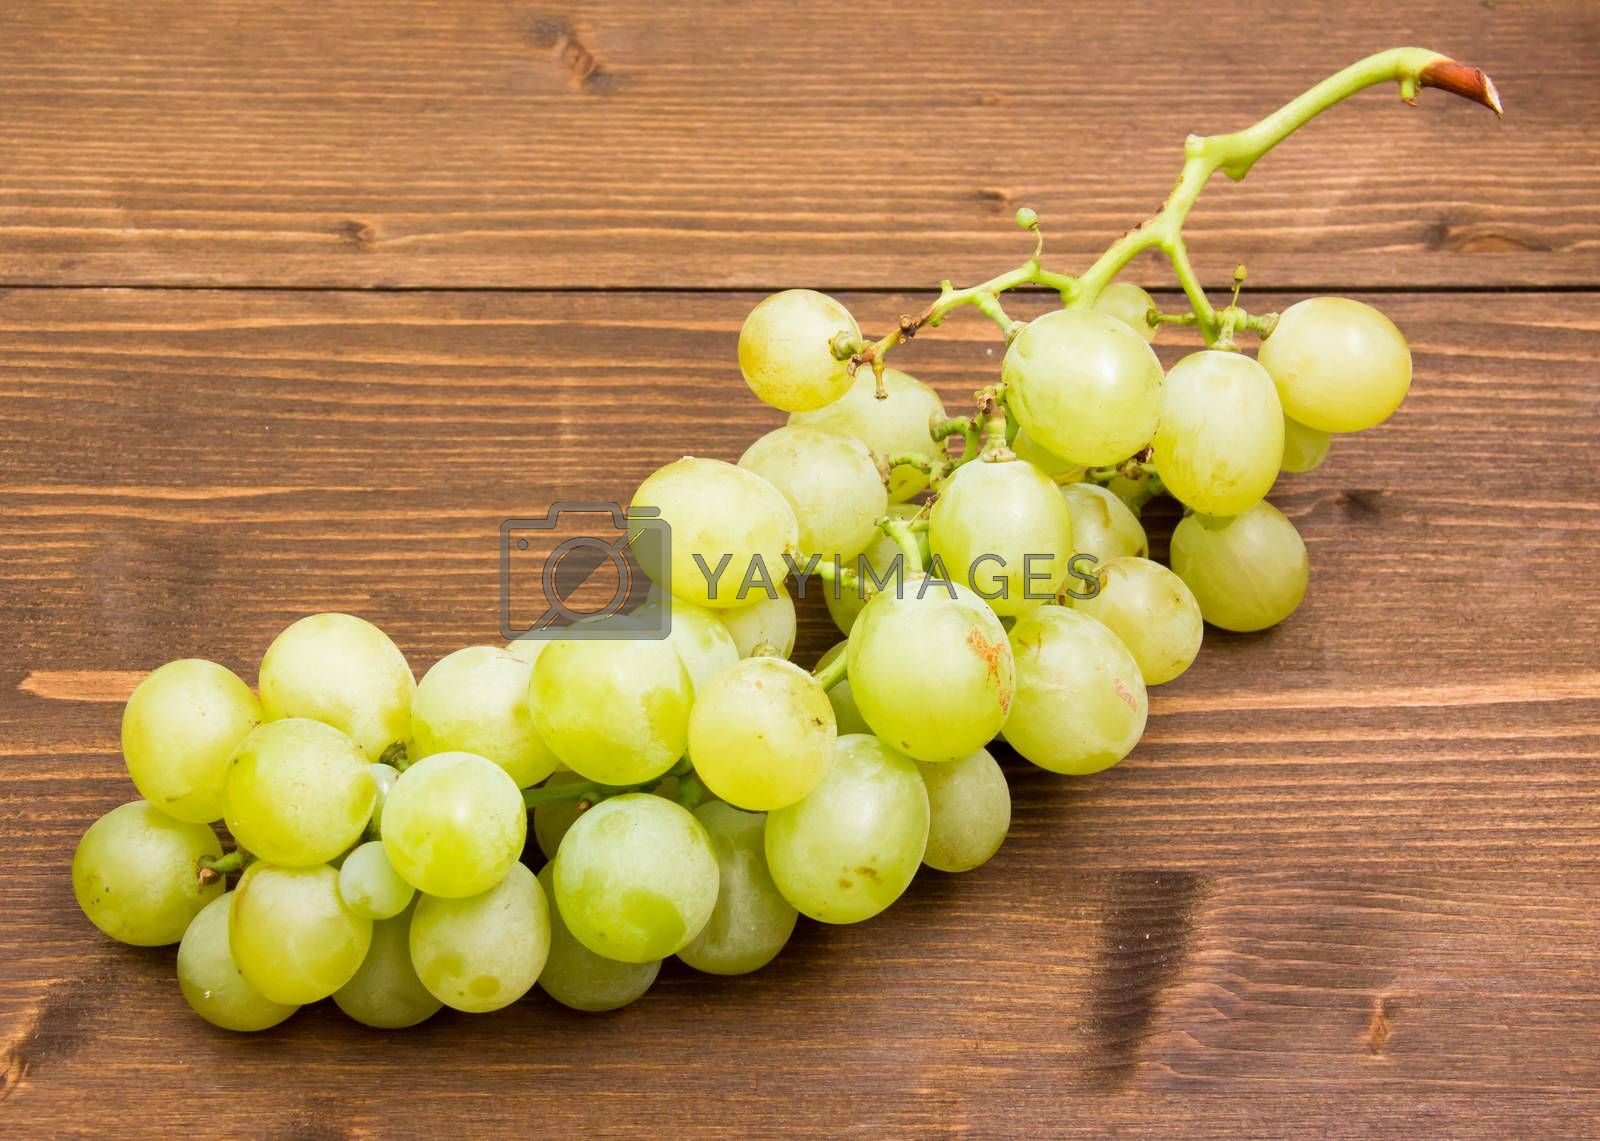 Bunch of grapes on wooden table seen from above